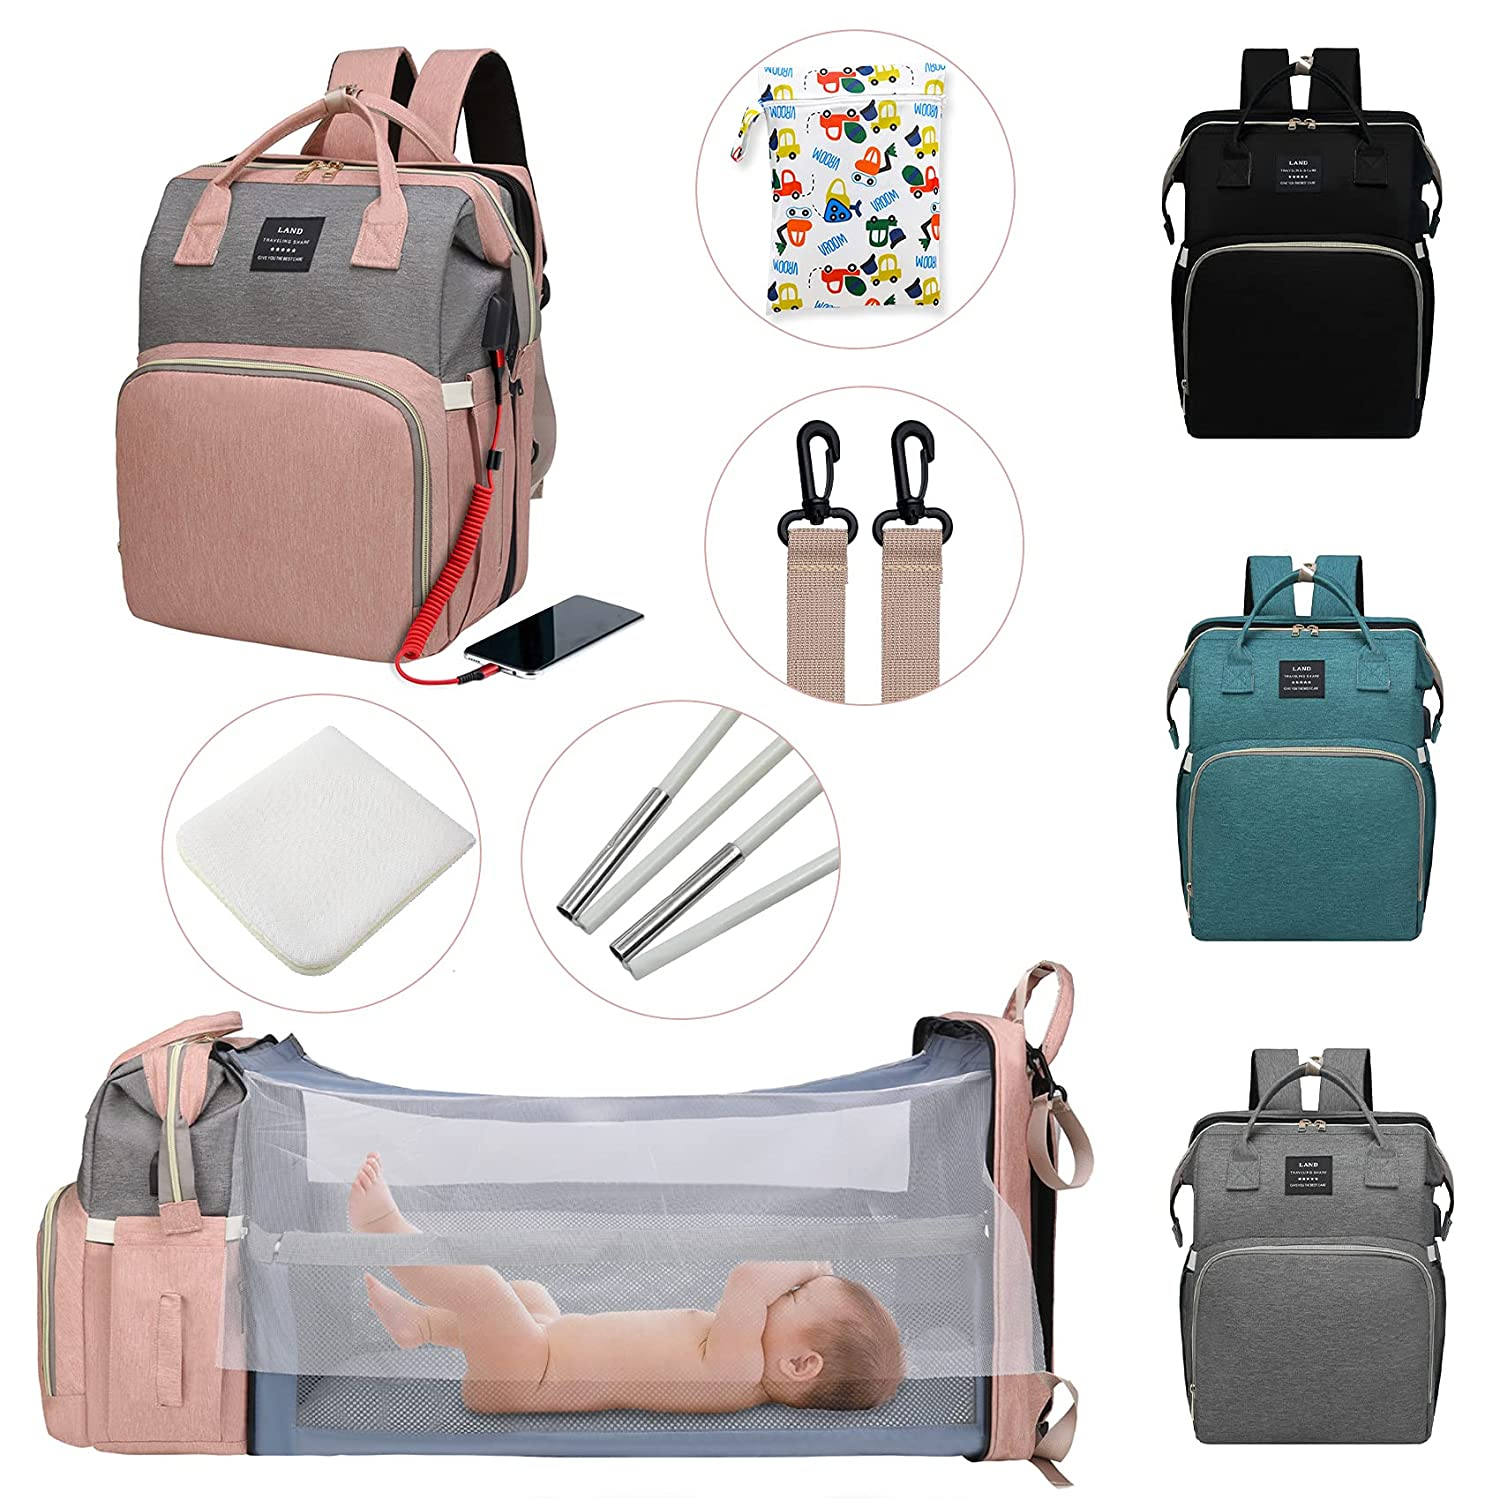 Diaper Bag Backpack with Changing Station,7 in 1 Travel Foldable Baby Diaper Bag,Mommy Bag Diaper Bag Changing Station Multi-Function Waterproof with Mattress and USB Charging Port (Pink-Grey)